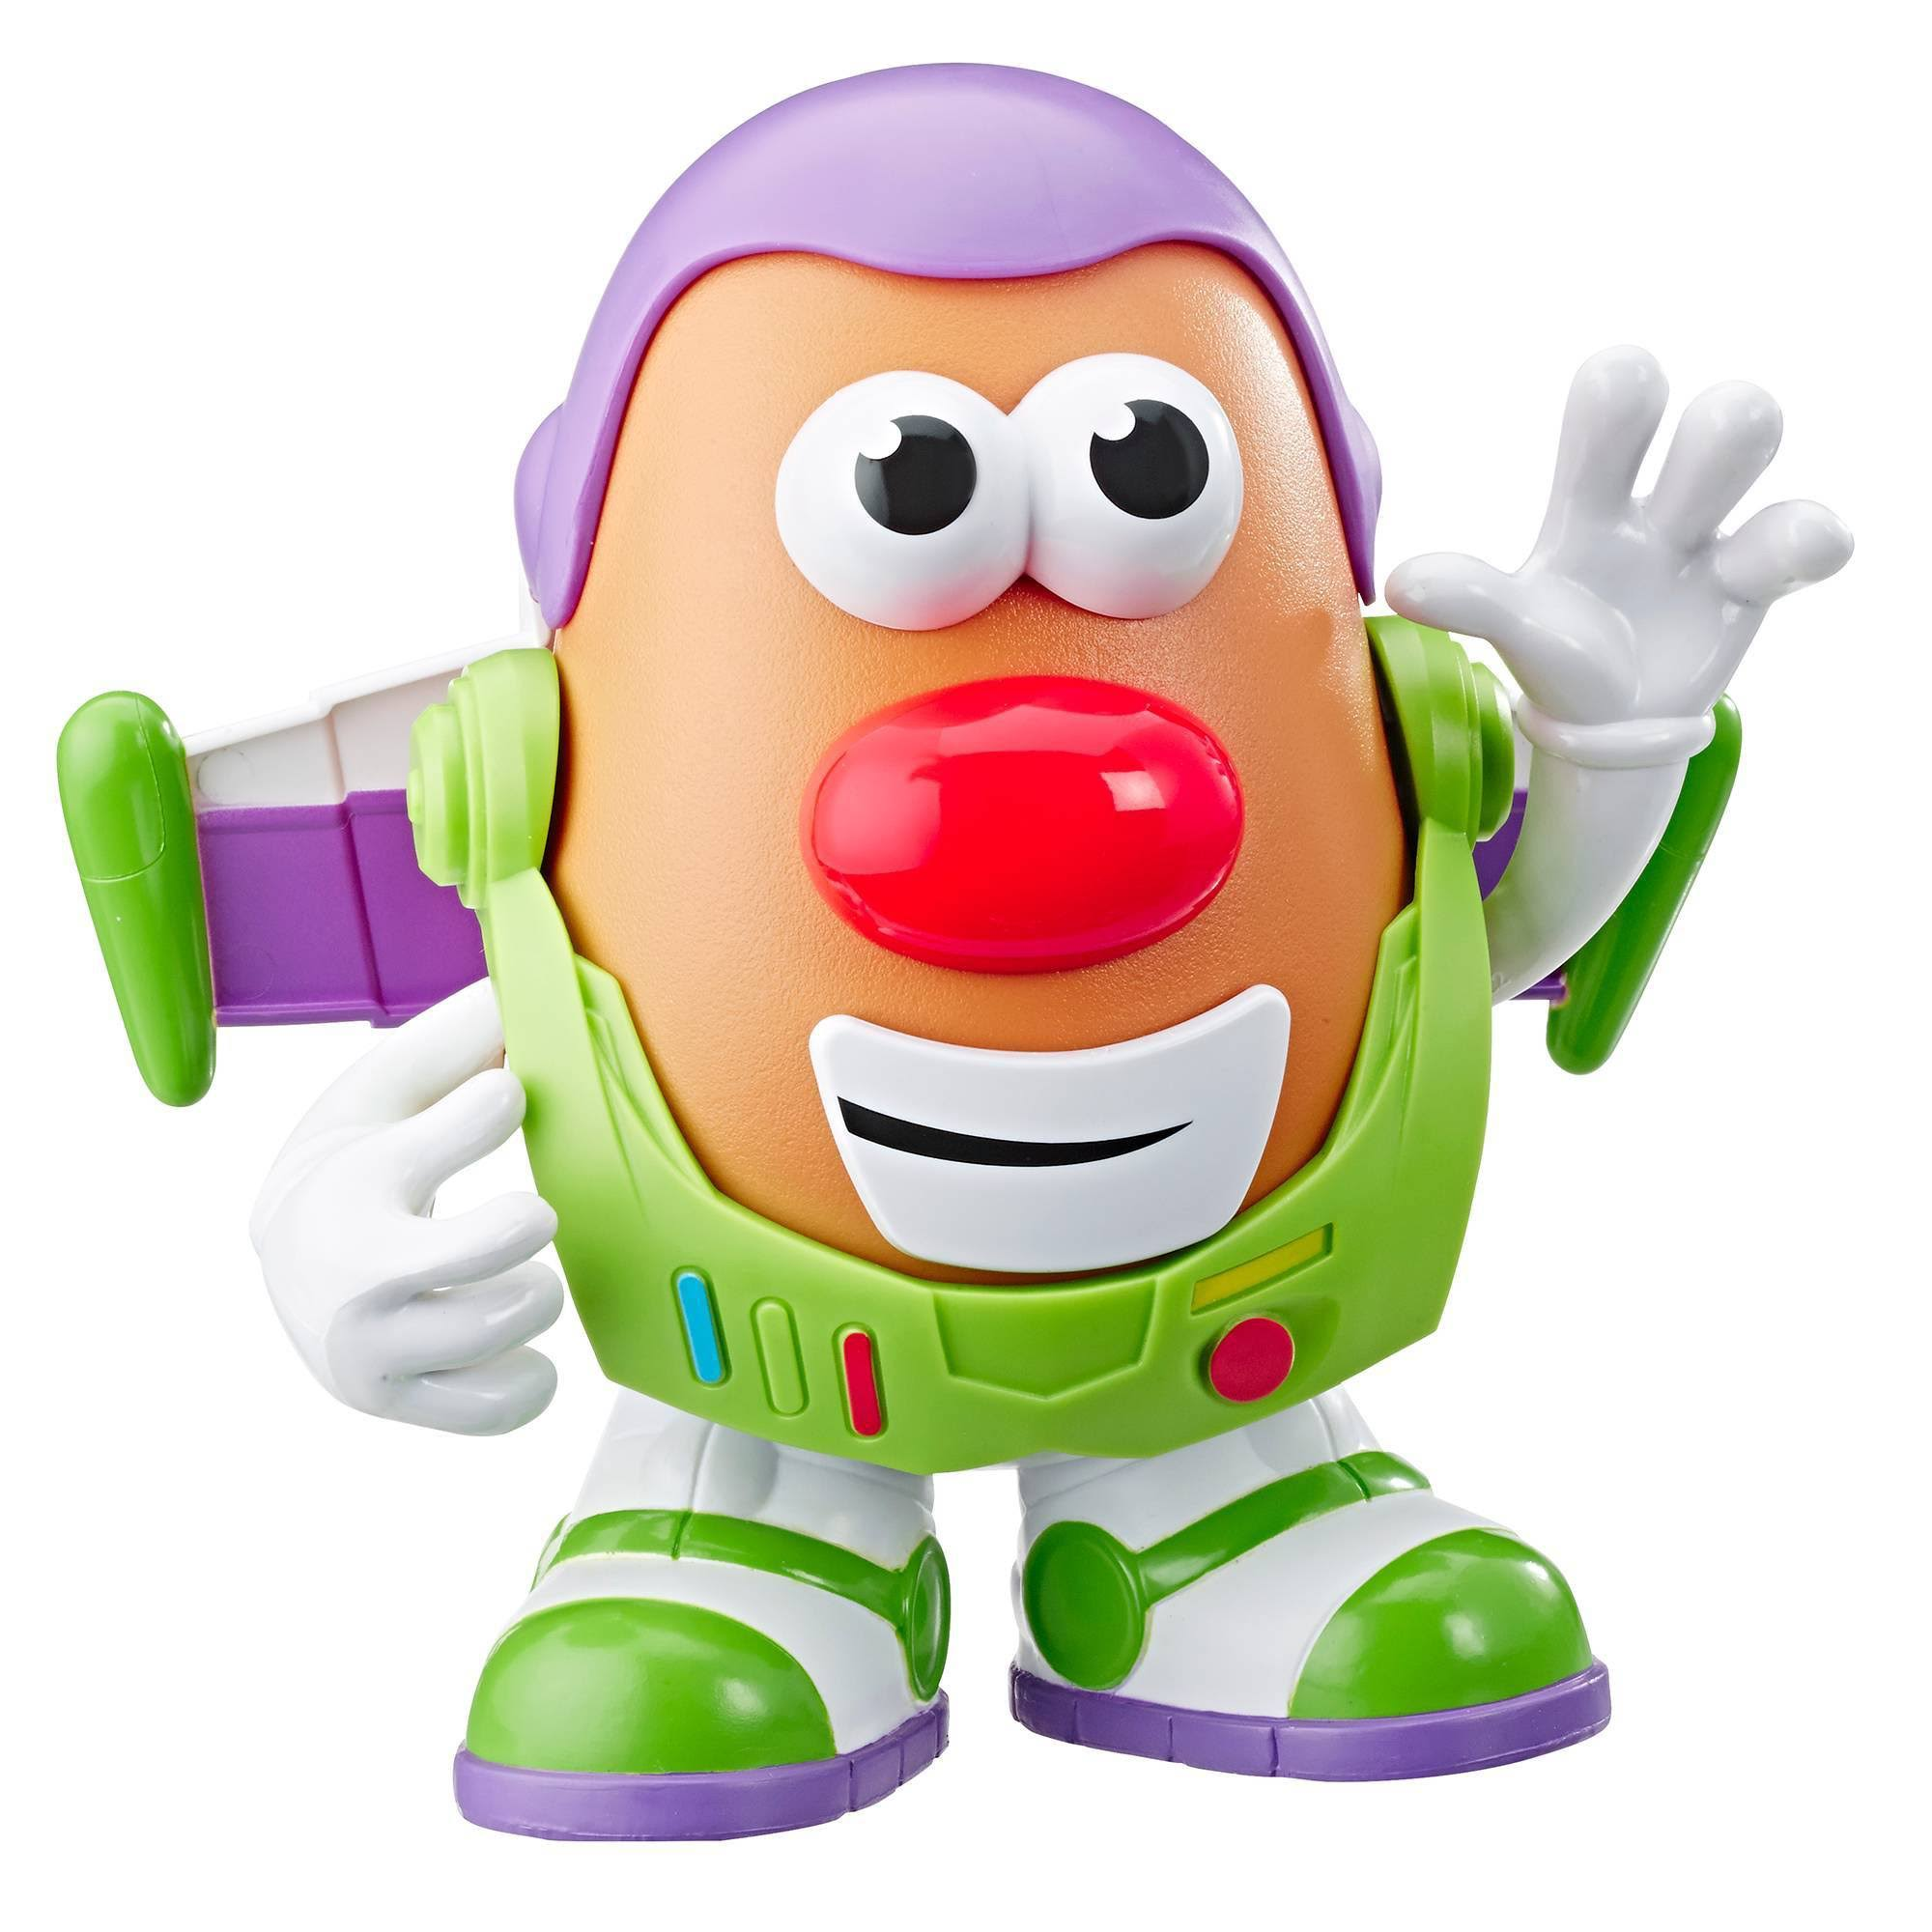 Disney/Pixar Toy Story 4 Mr. Potato Head Spud Lightyear Figure